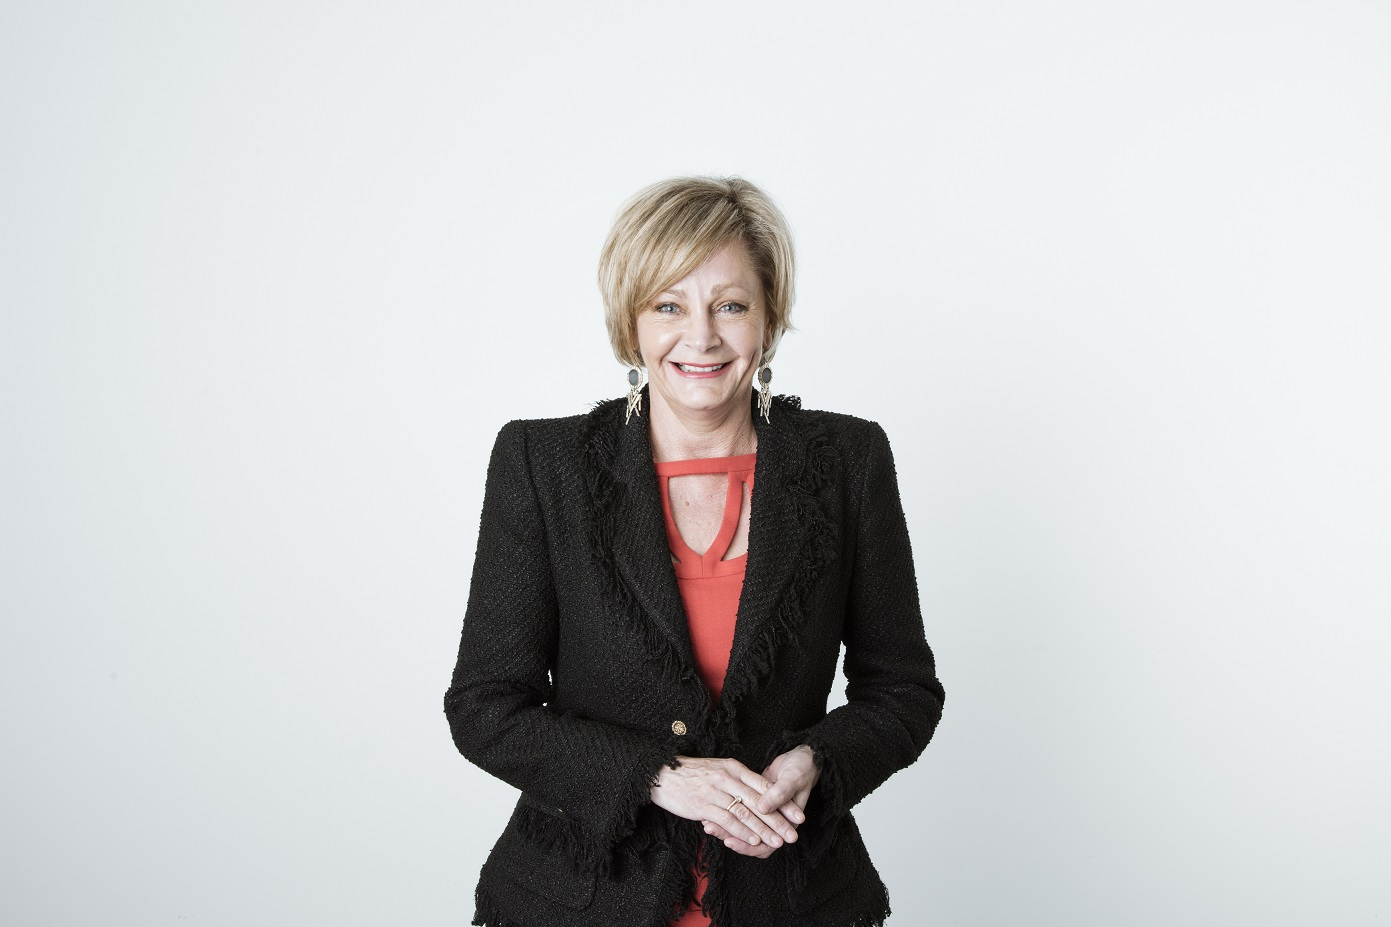 Red Havas' Sydney executive director Jackie Crossman steps down after 4 years at the helm